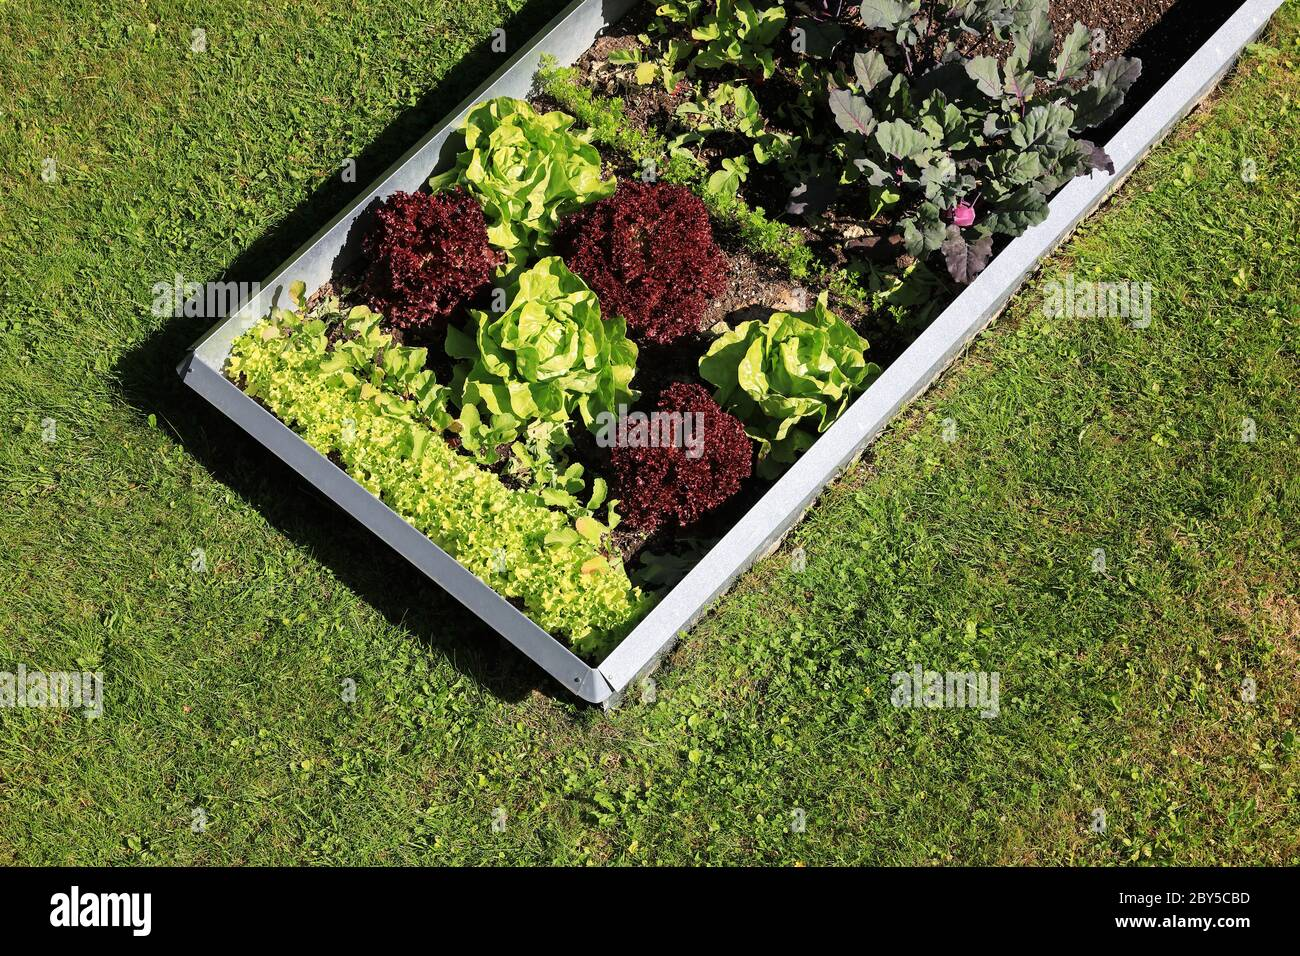 Garden with organic lettuce salad and vegetables and slug protection fence Stock Photo